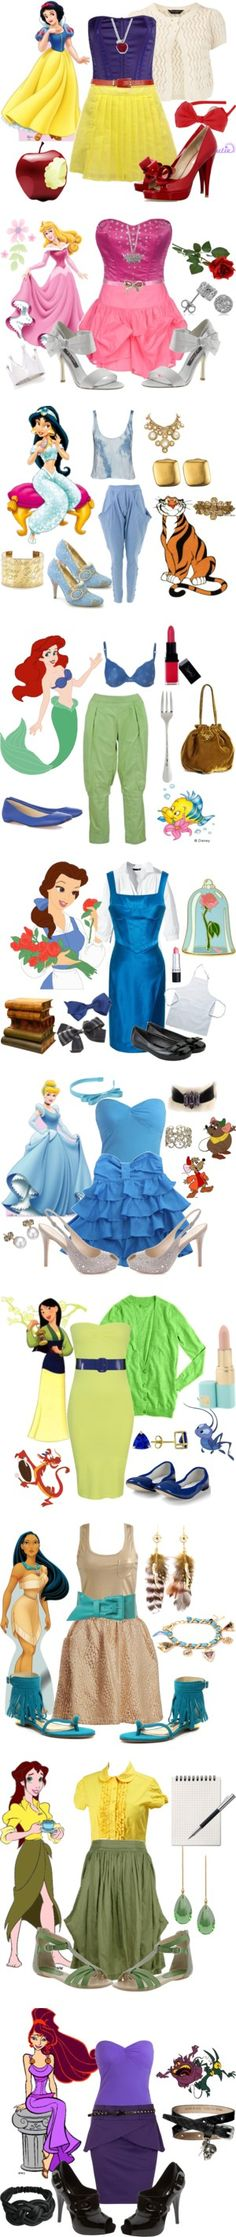 """Modern Days Disney Princesses"" by deborah37 on Polyvore"